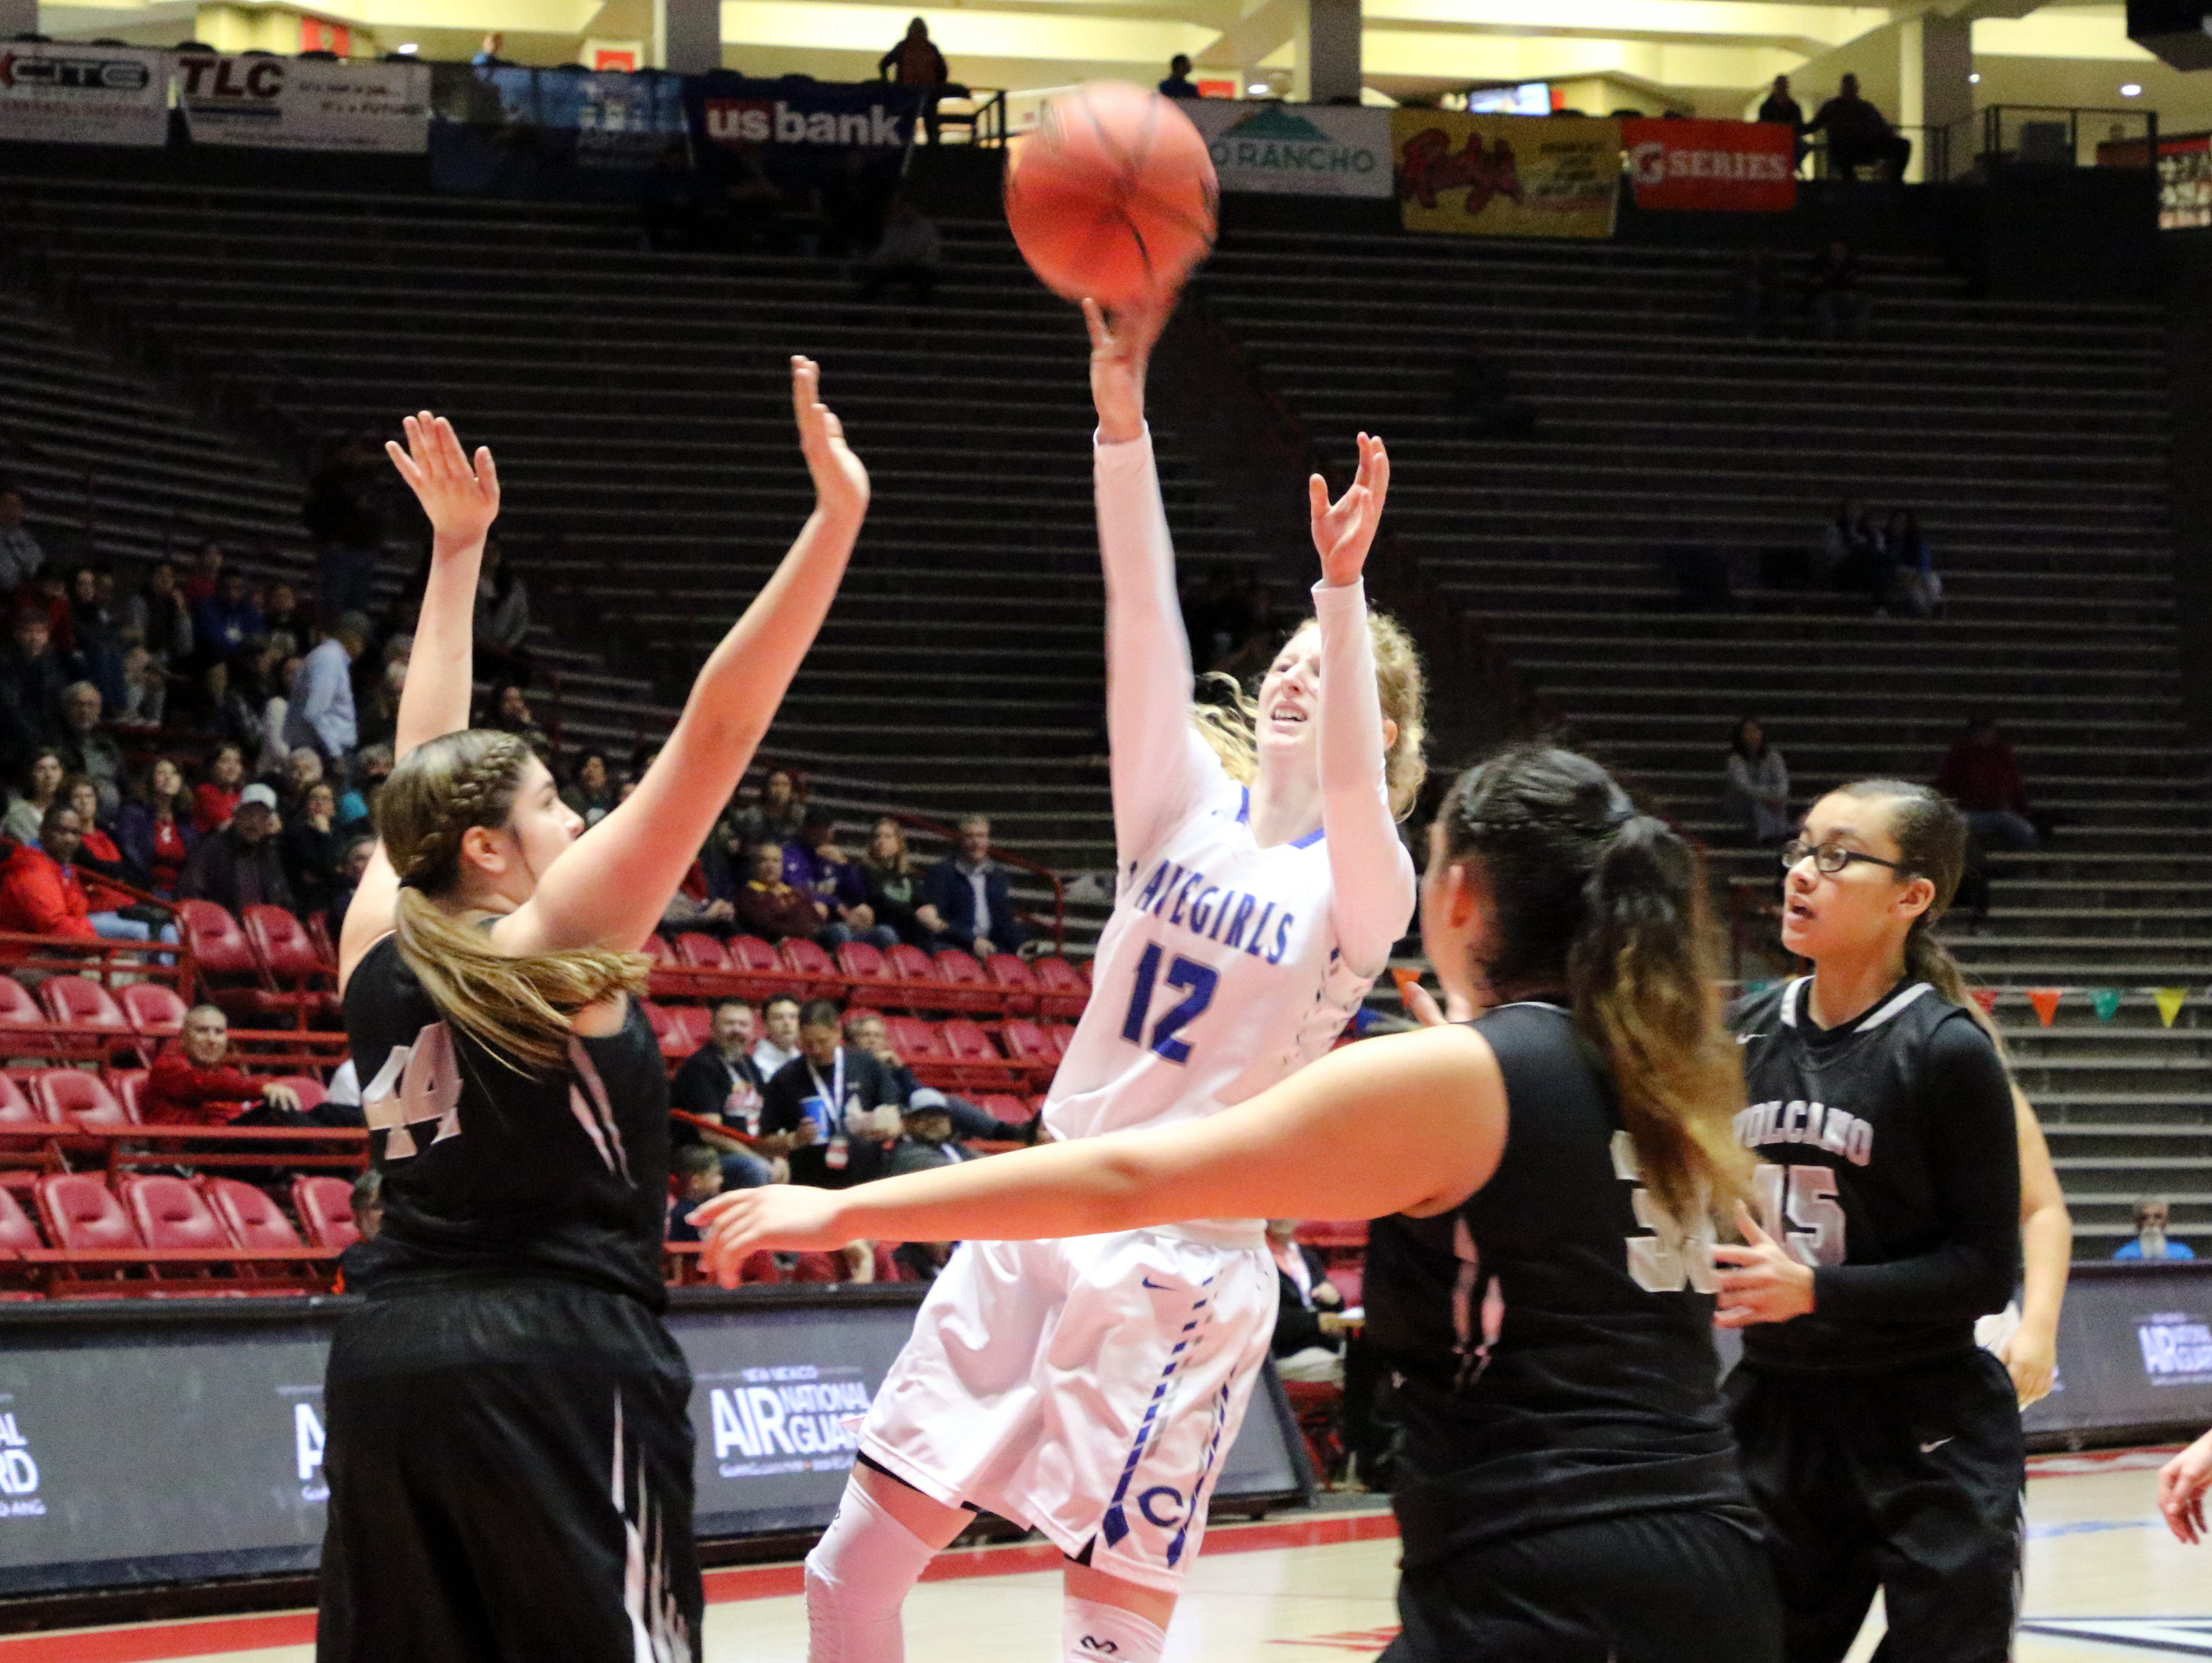 Carlsbad's Carsyn Bowell makes the game-winning shot with less than 30 seconds left in overtime. Boswell scored 12 points to lead the Cavegirls over Volcano Vista, 41-39.